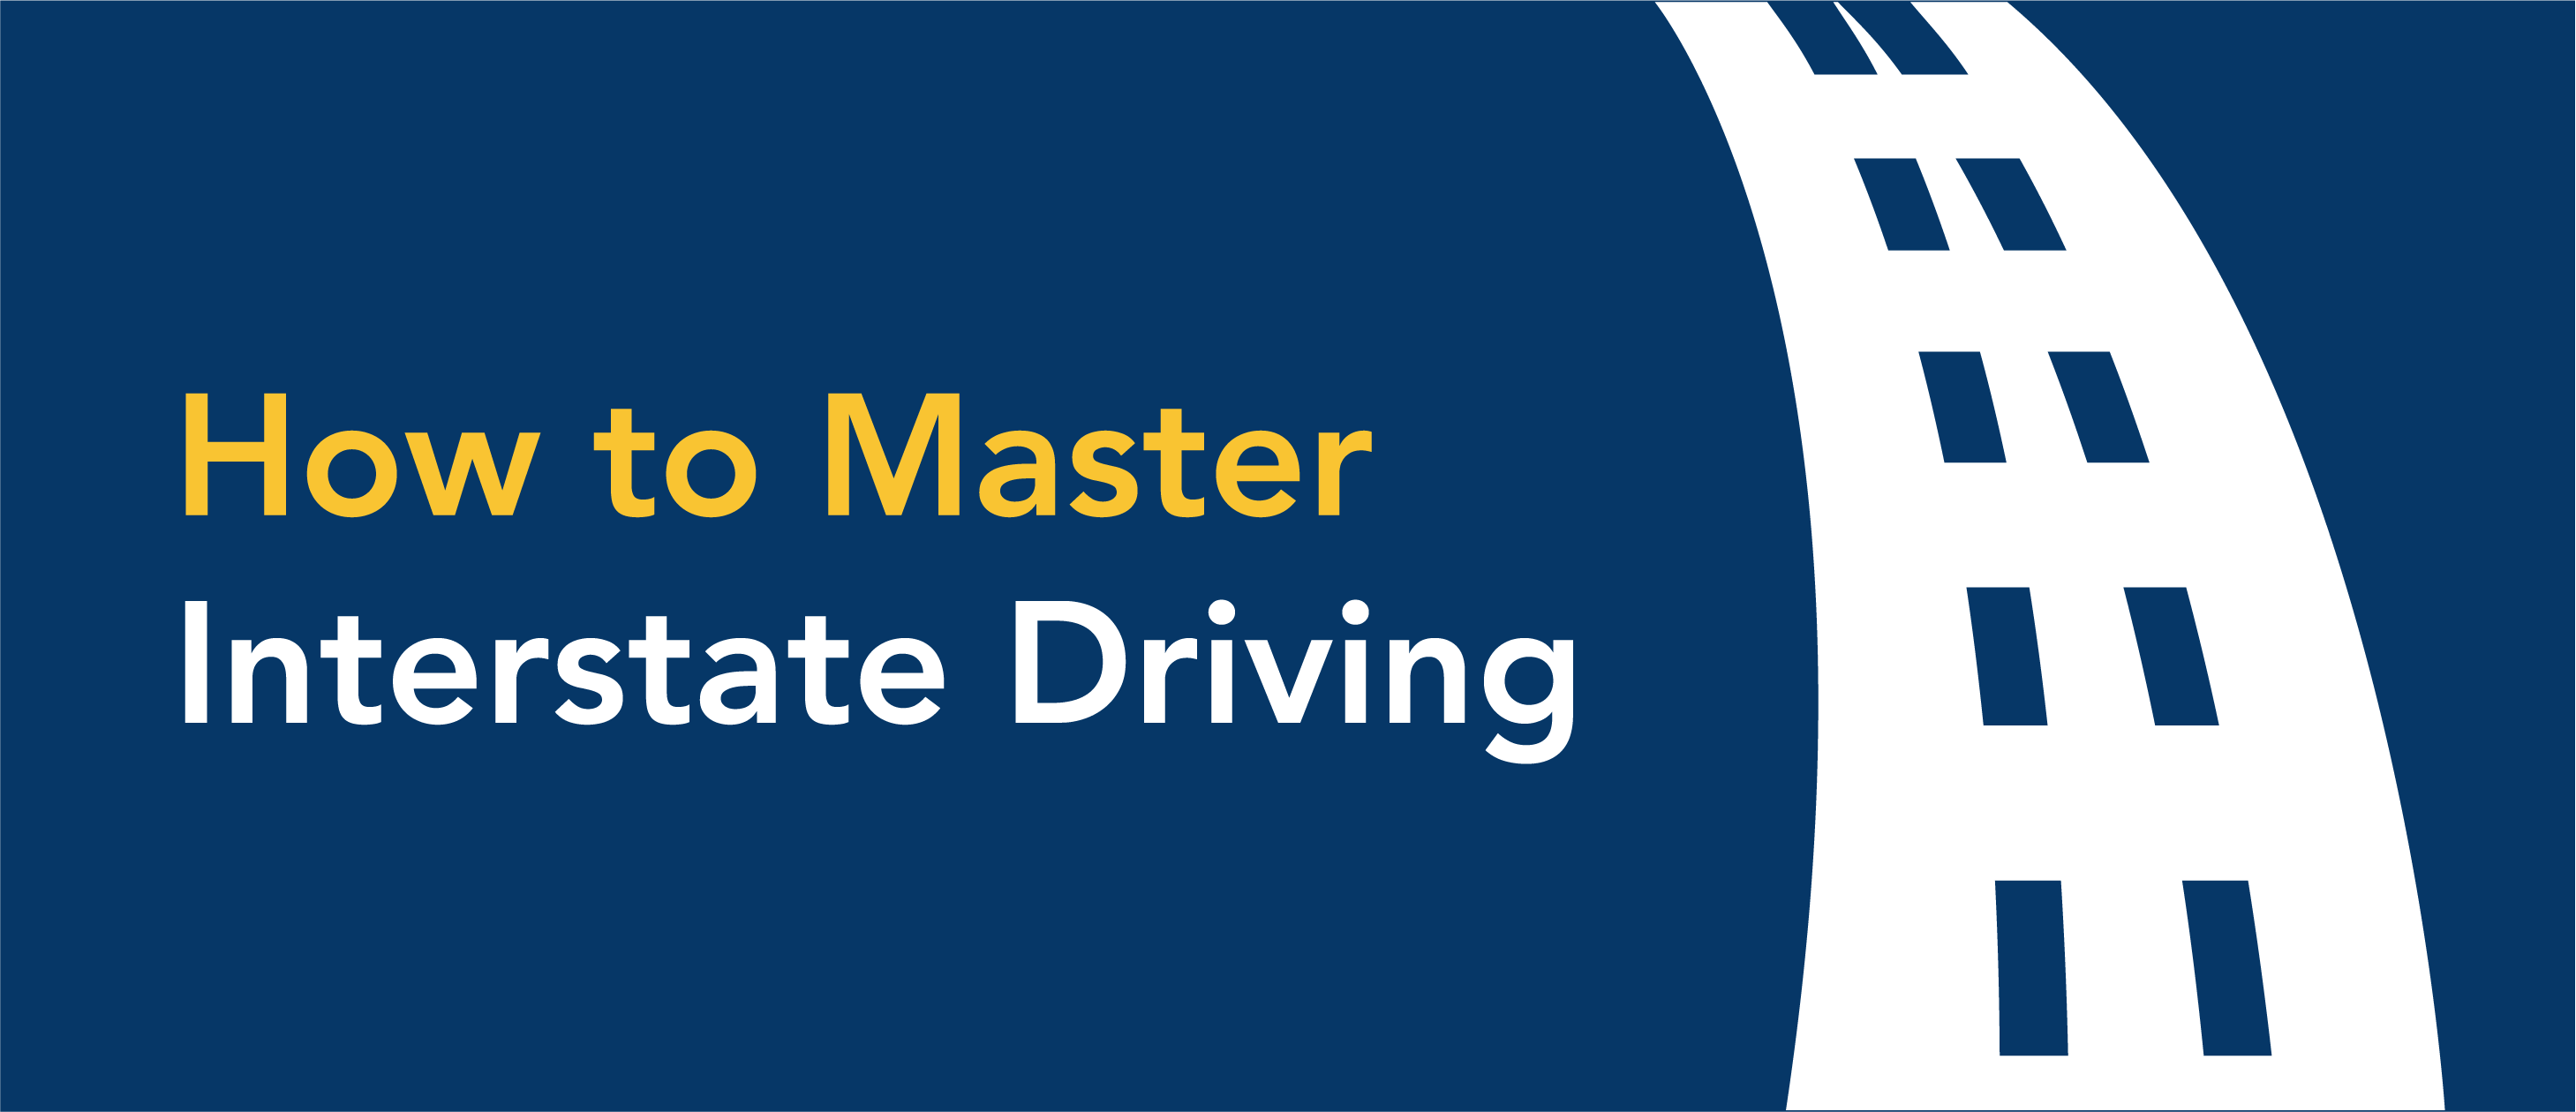 How to master interstate driving